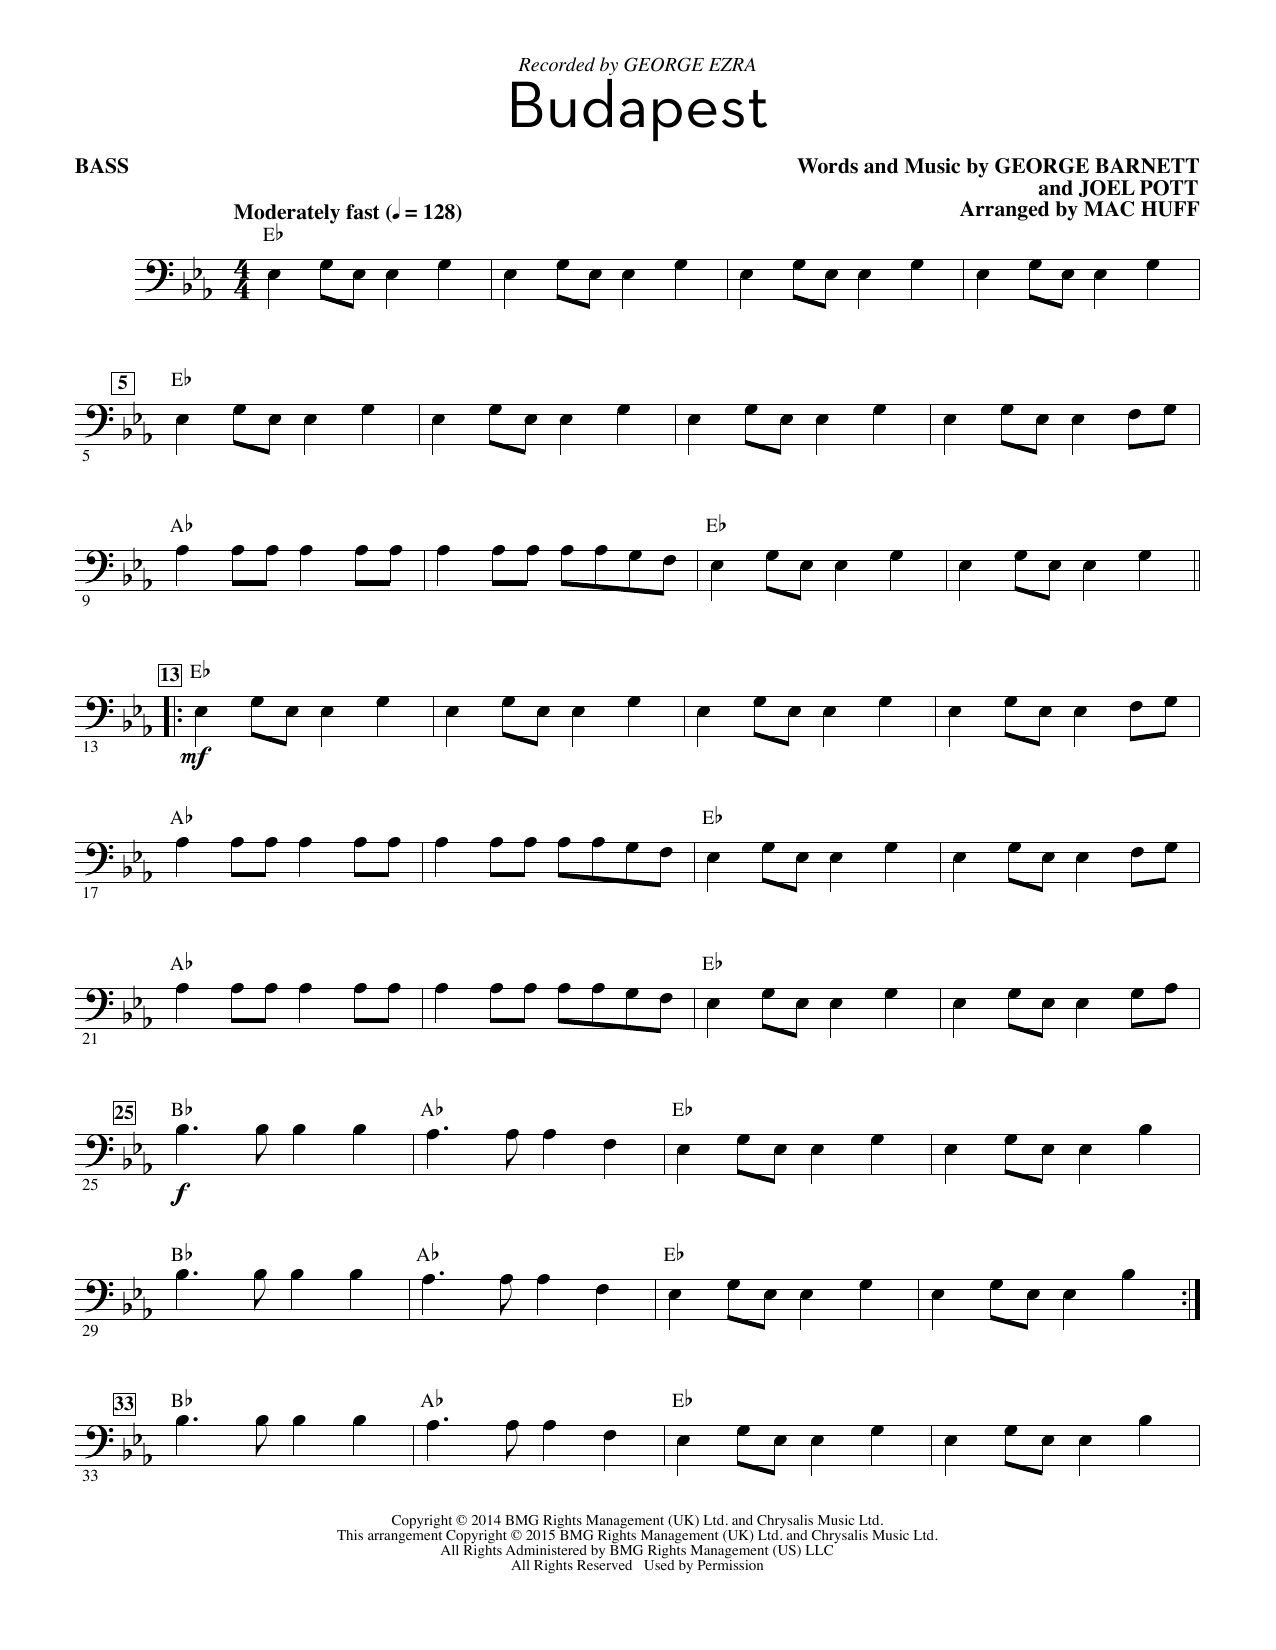 Download George Ezra 'Budapest (arr. Mac Huff) - Bass' Digital Sheet Music Notes & Chords and start playing in minutes